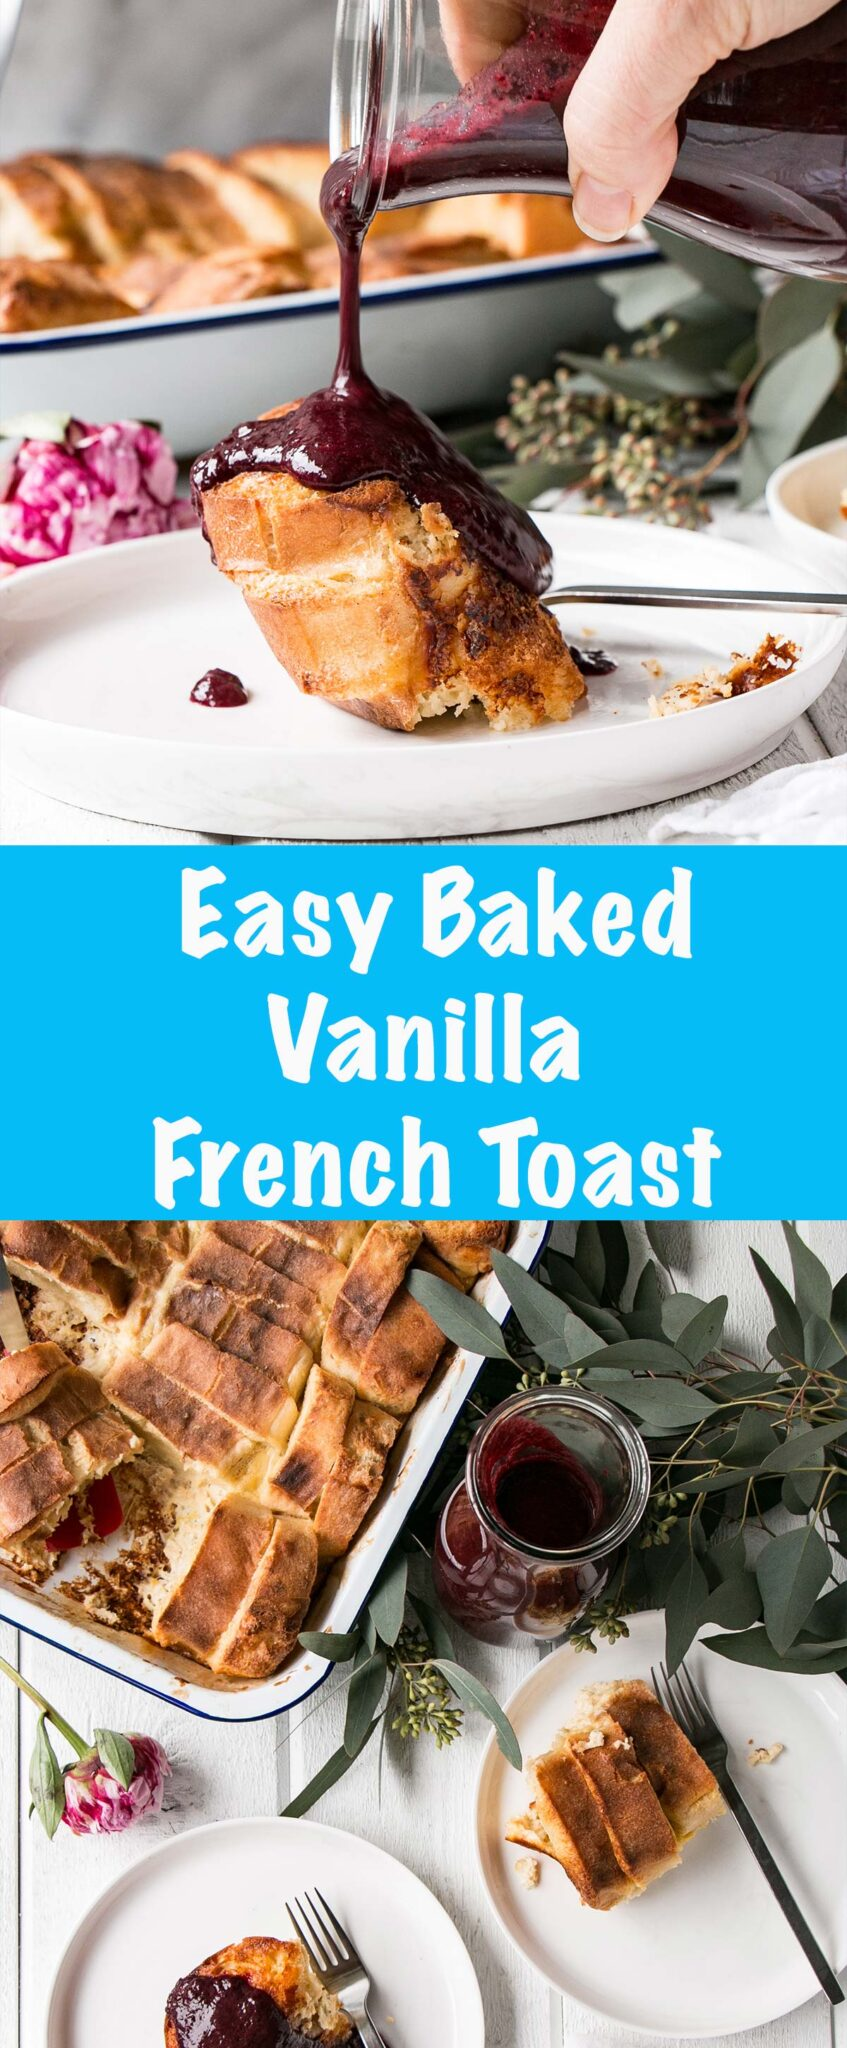 Easy Baked Vanilla French Toast with Berry Sauce is a dream brunch! Easy to prep, smells heavenly in the oven, and tastes is crazy delicious! #brunch #frenchtoast